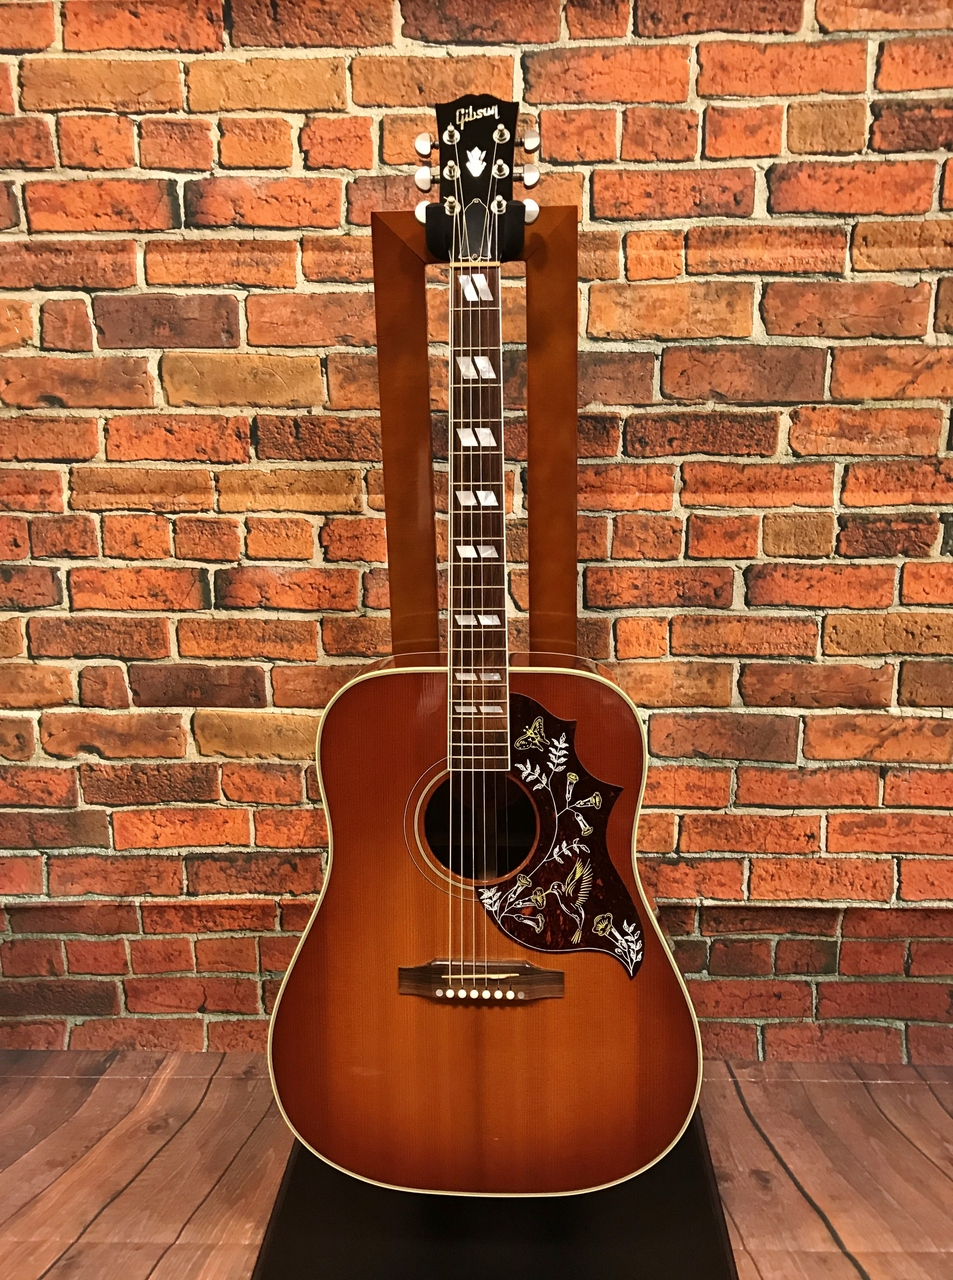 Gibson Hummingbird [used article] [Made in 2001]